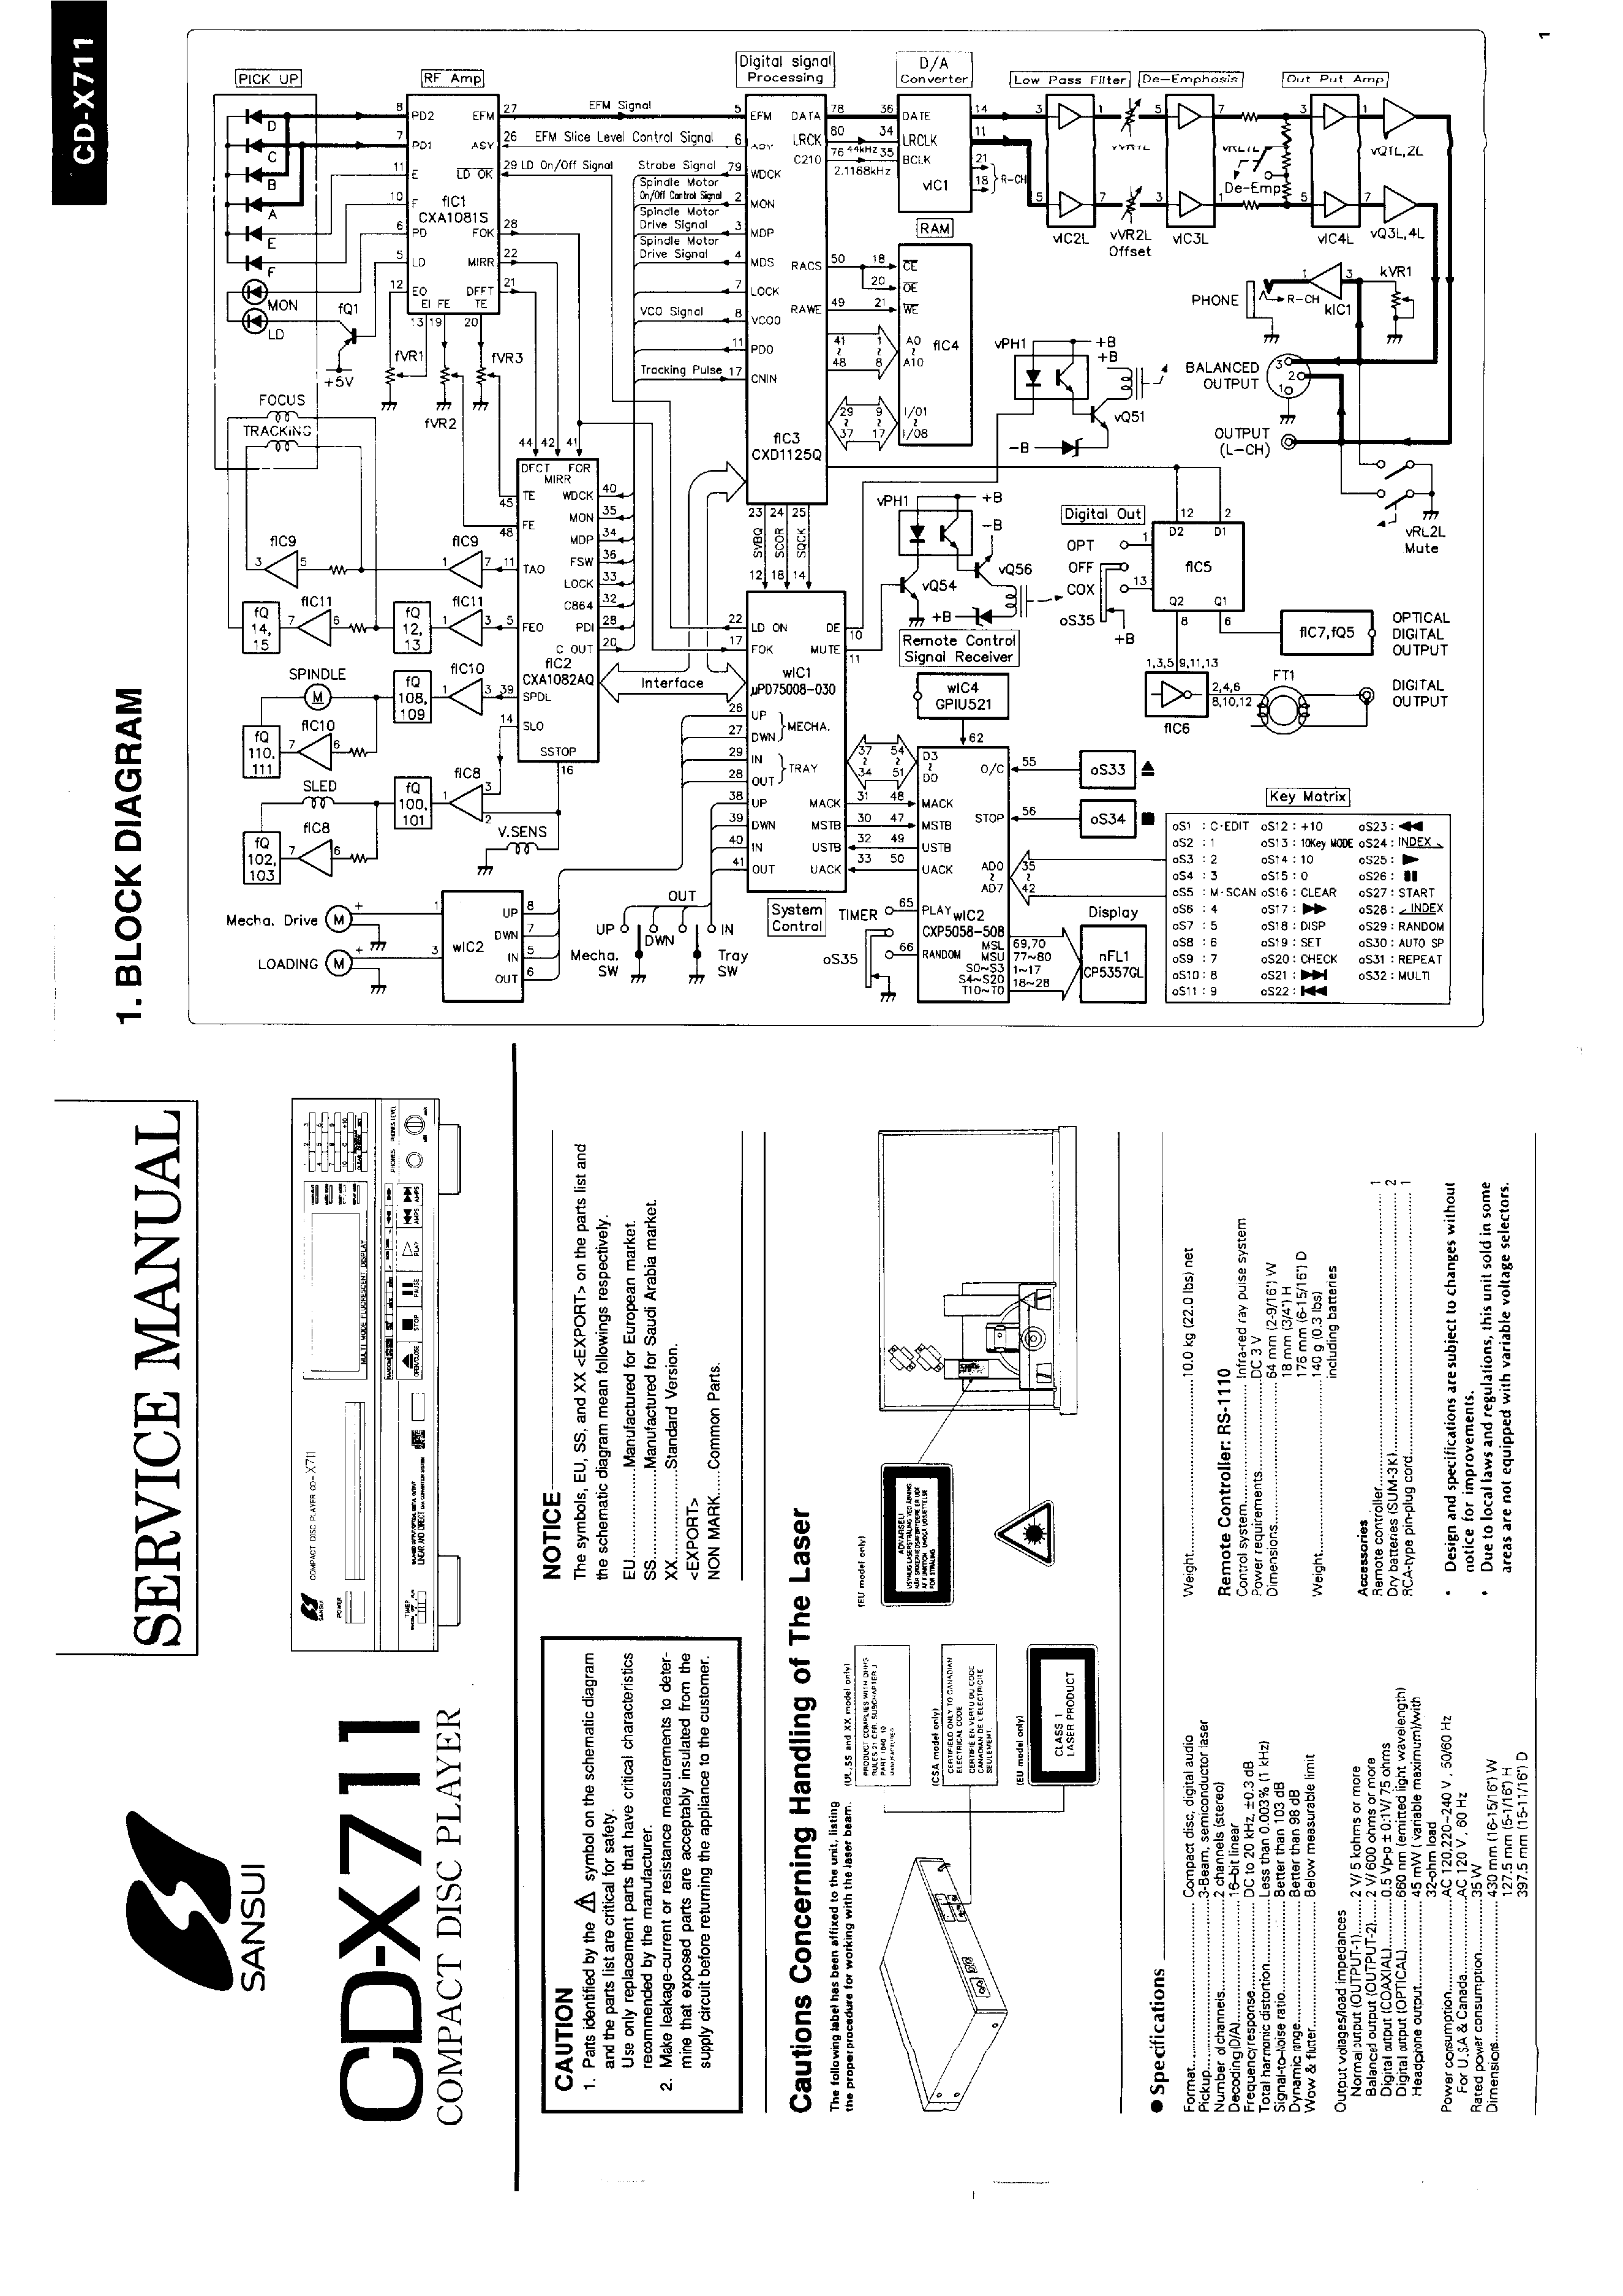 service manual for sansui cd-x711